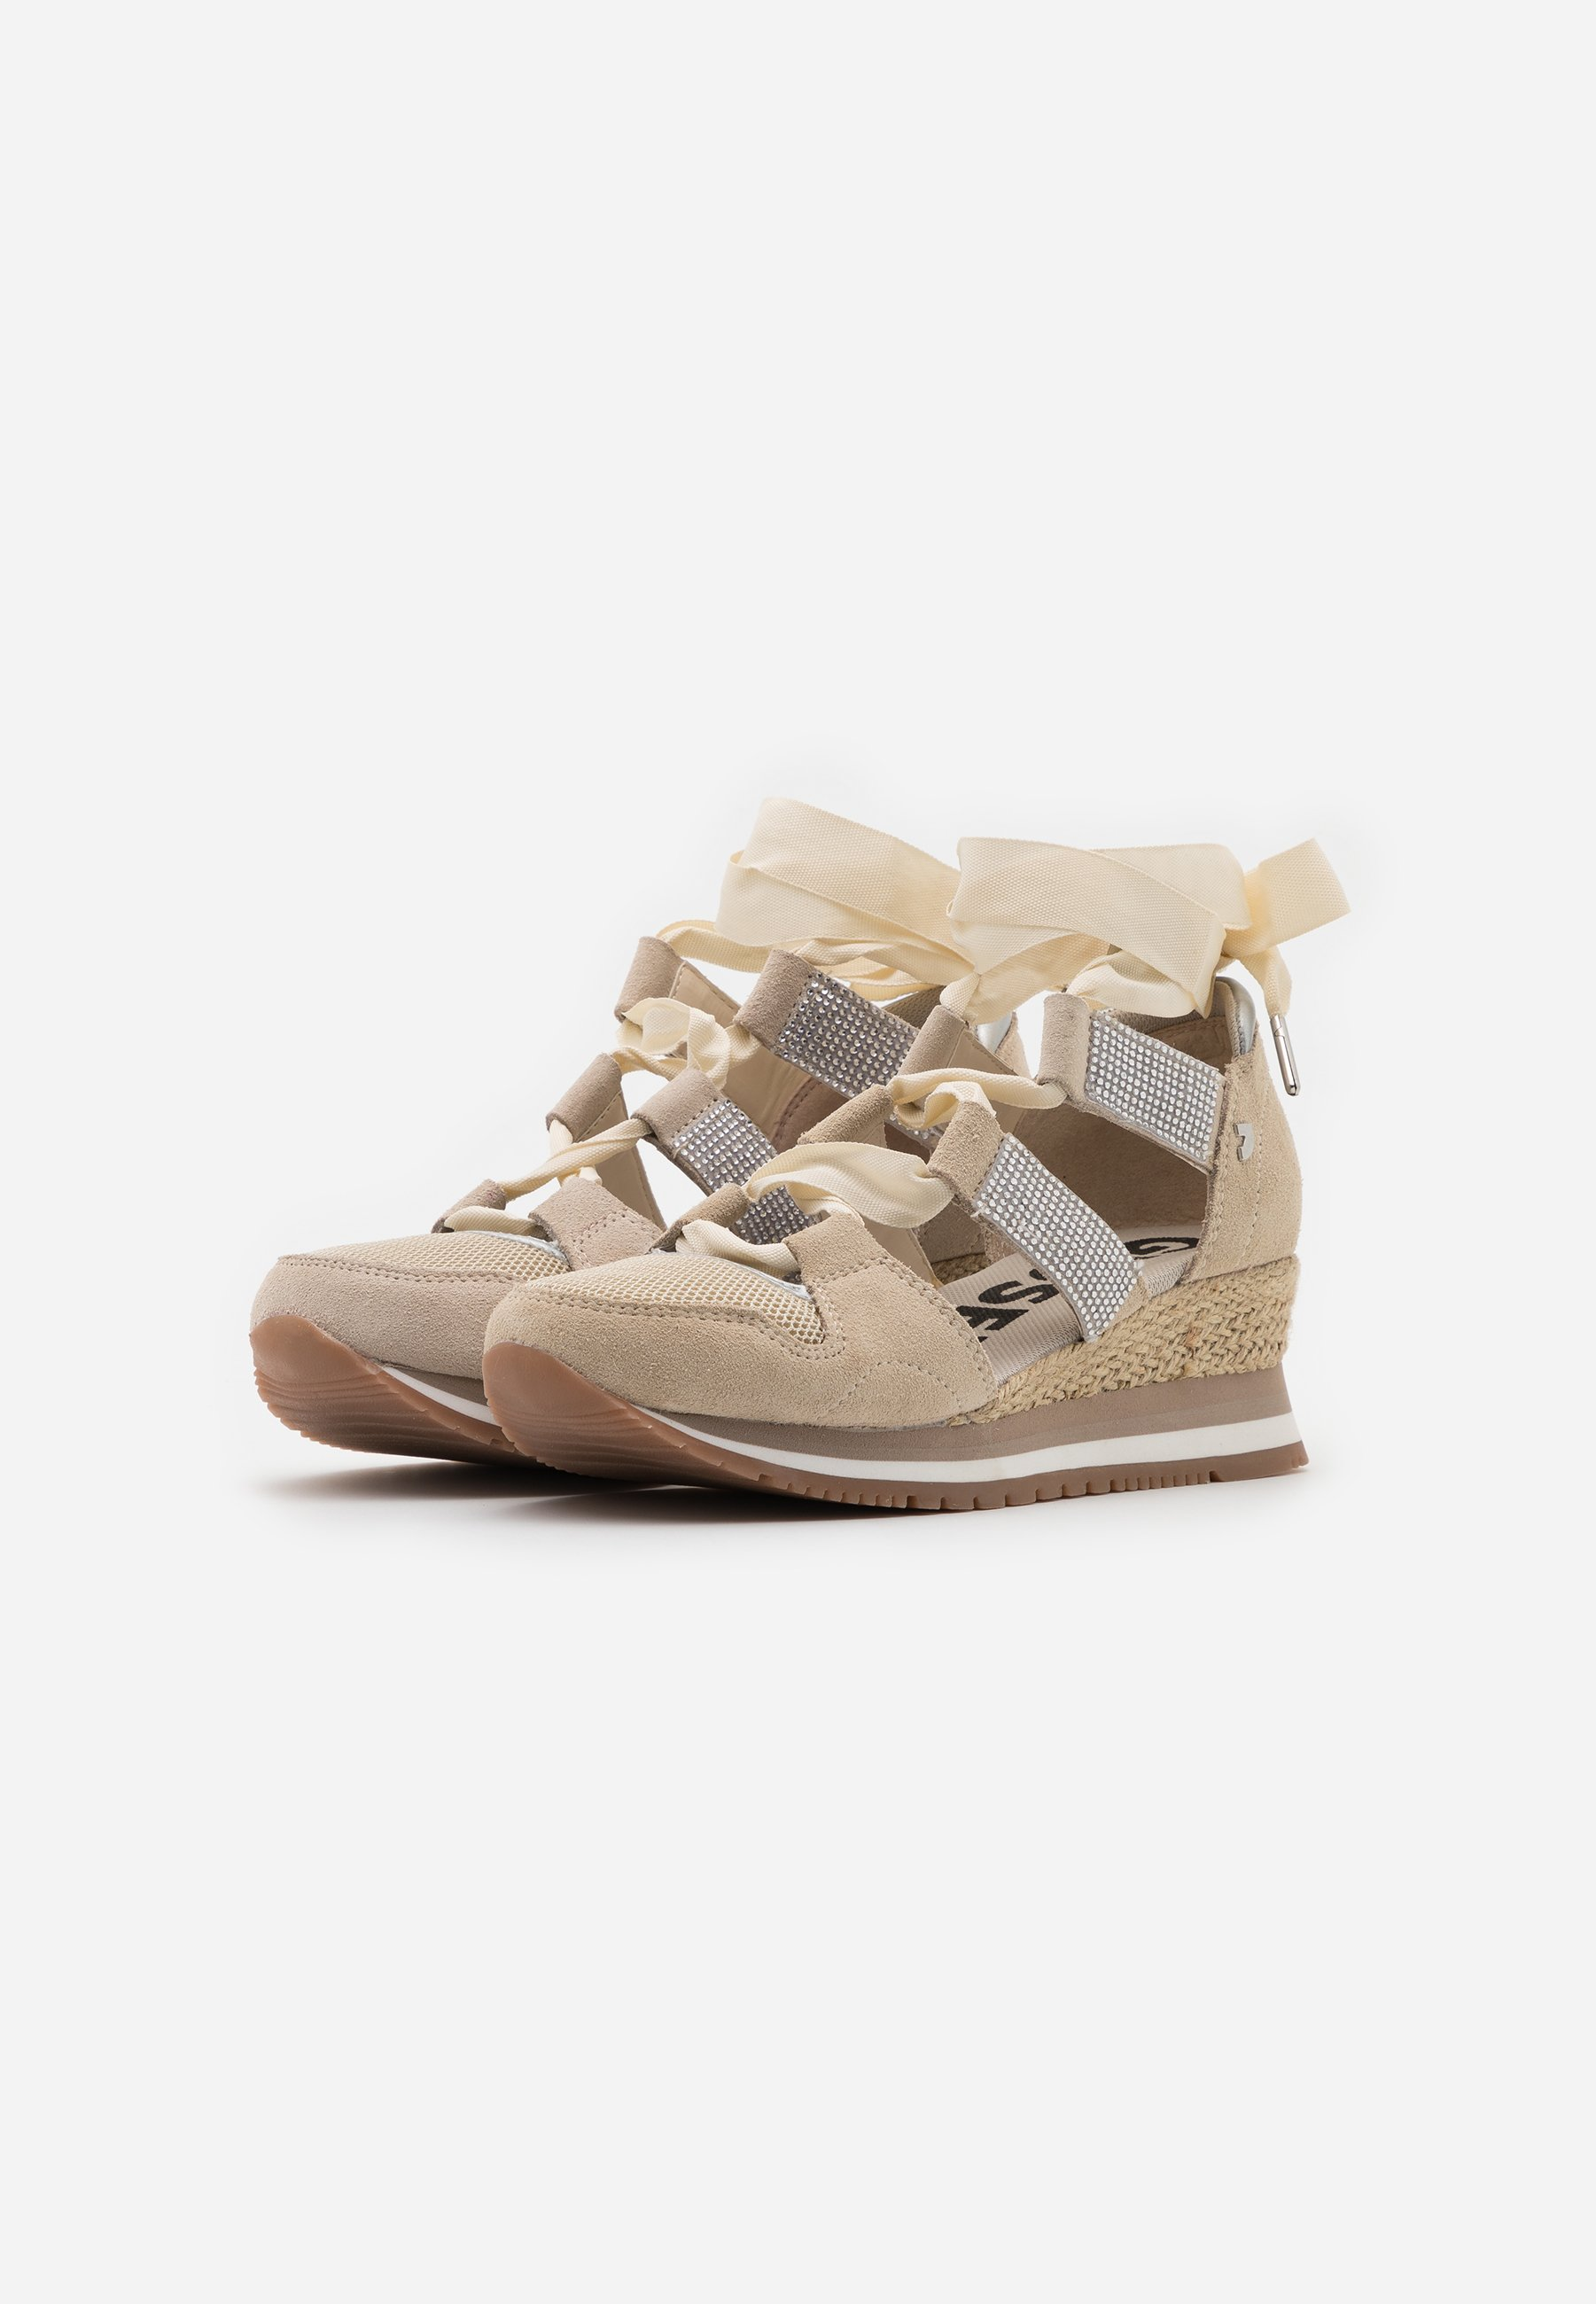 Gioseppo Mustique - Sneaker Low Offwhite